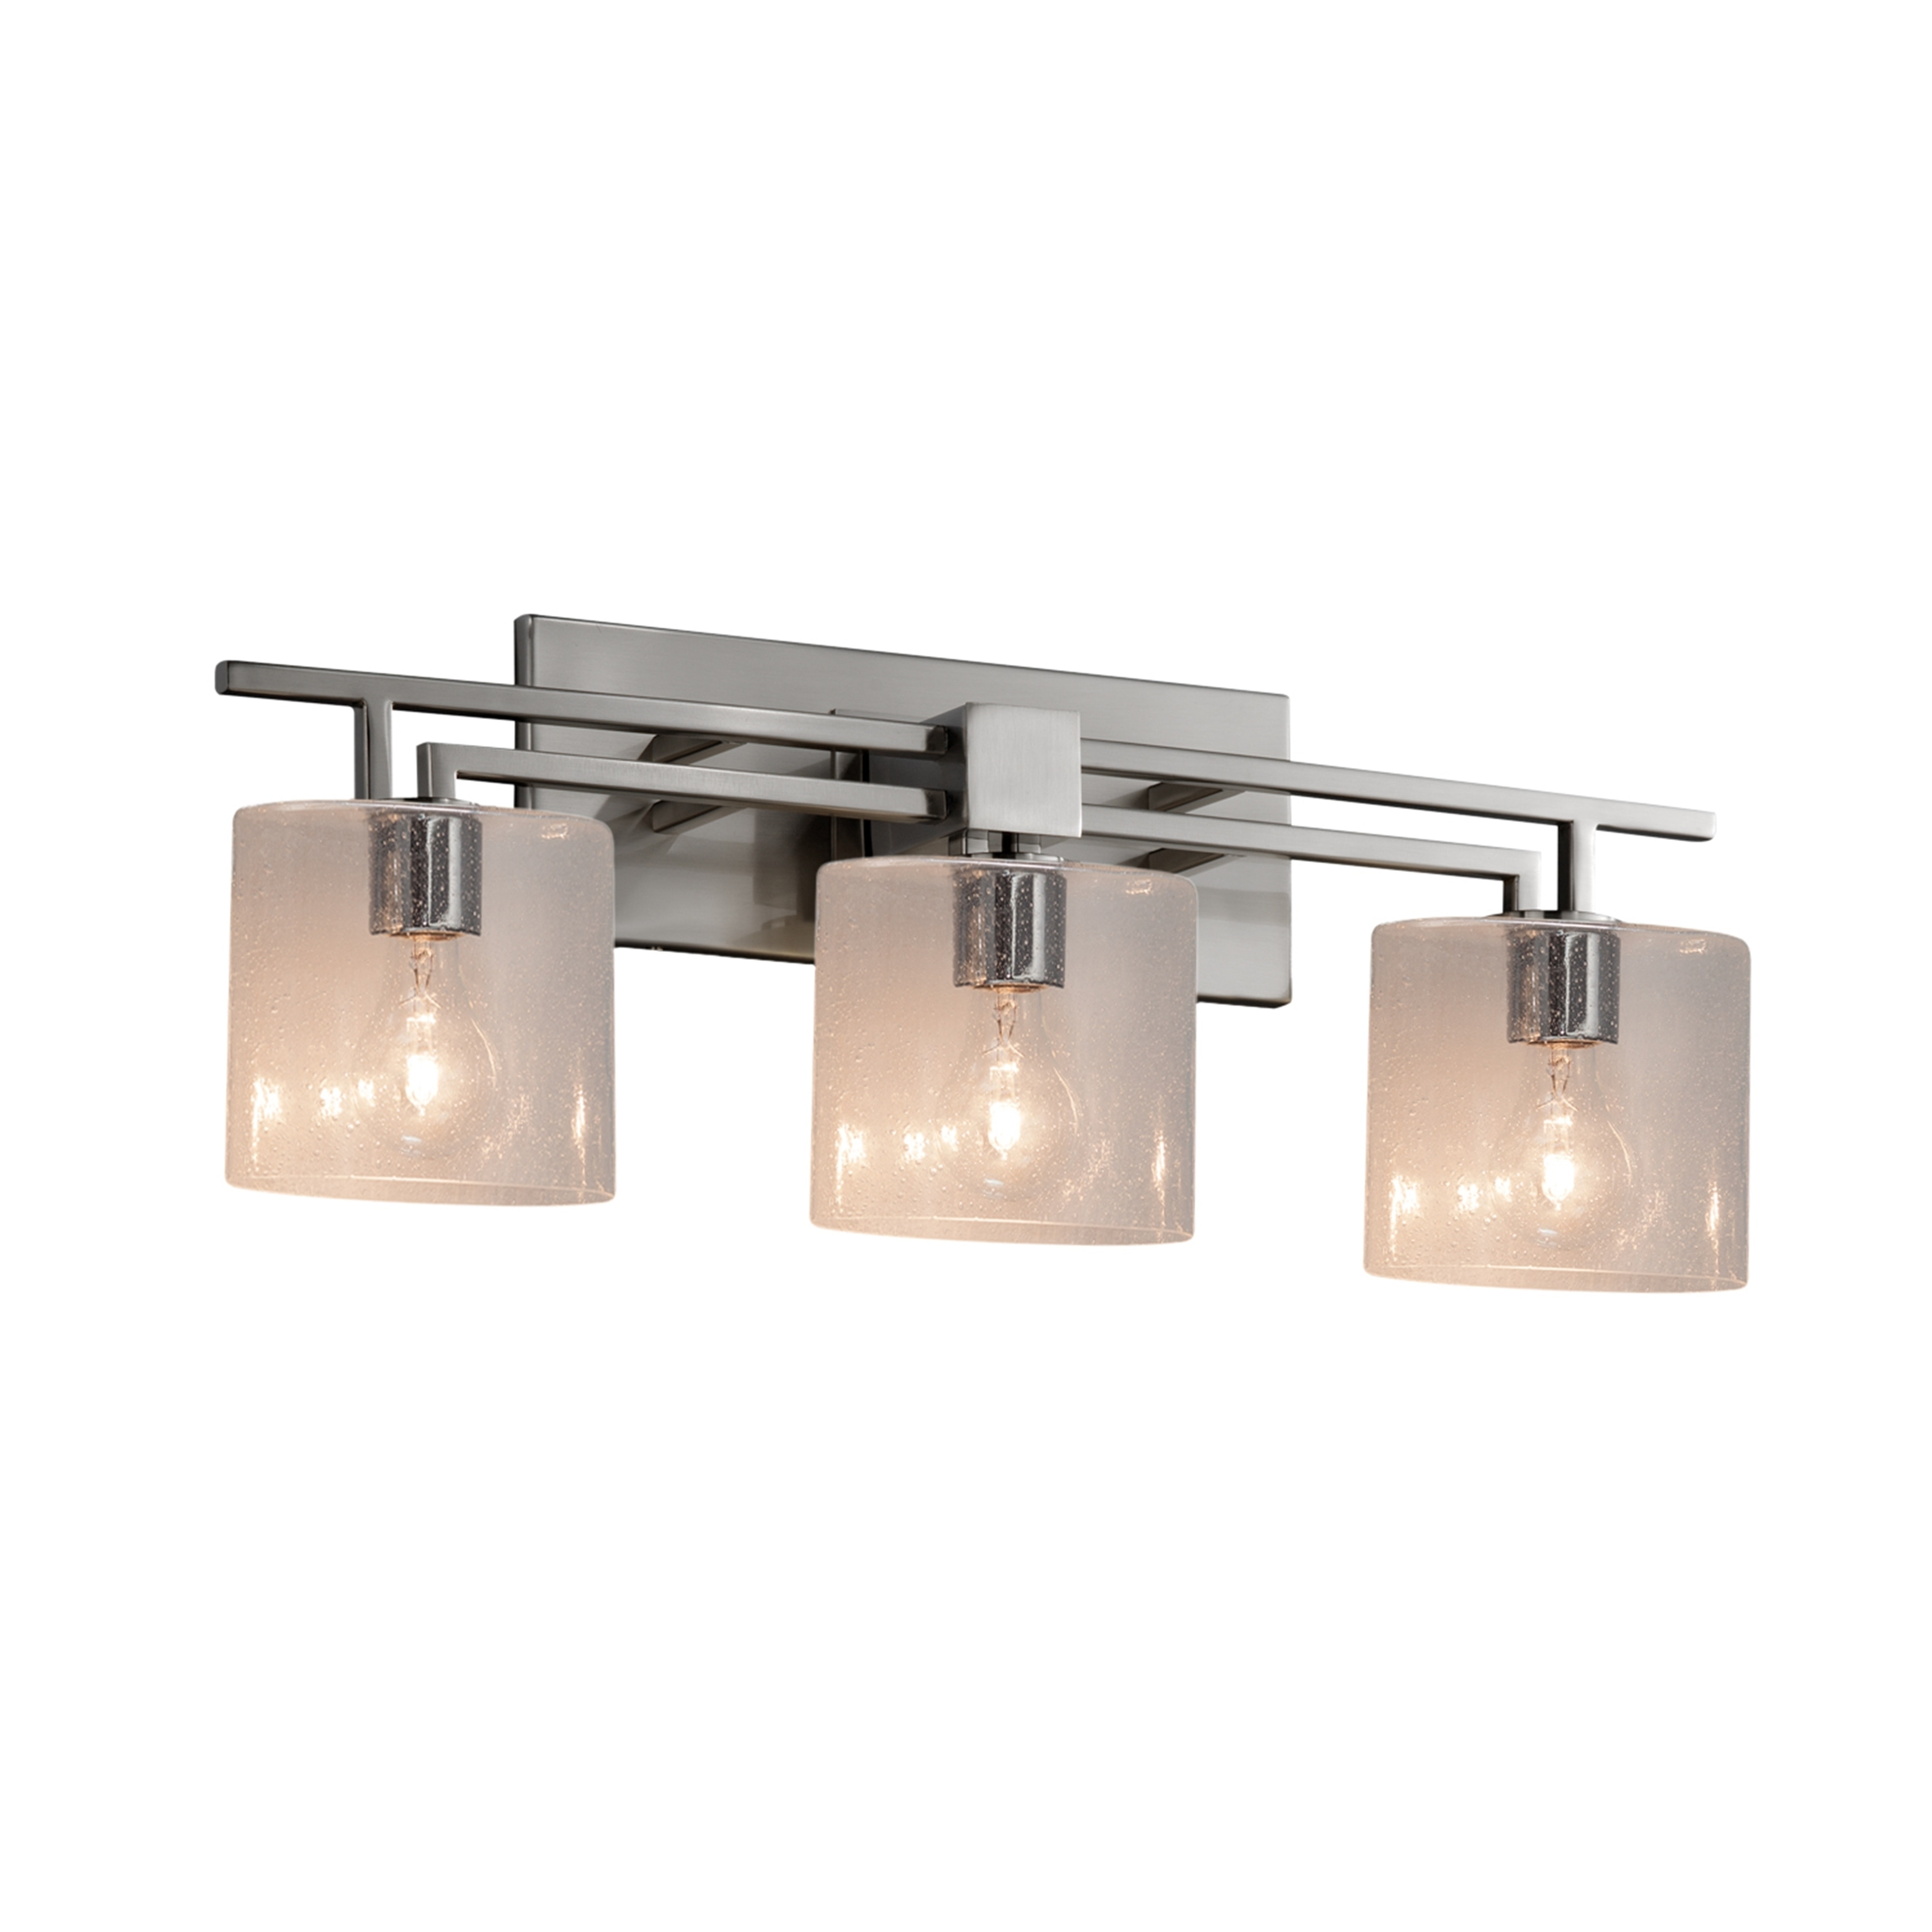 Justice Design Fusion Aero 3 Light Brushed Nickel Bath Bar Seeded Oval Shade Overstock 23611038